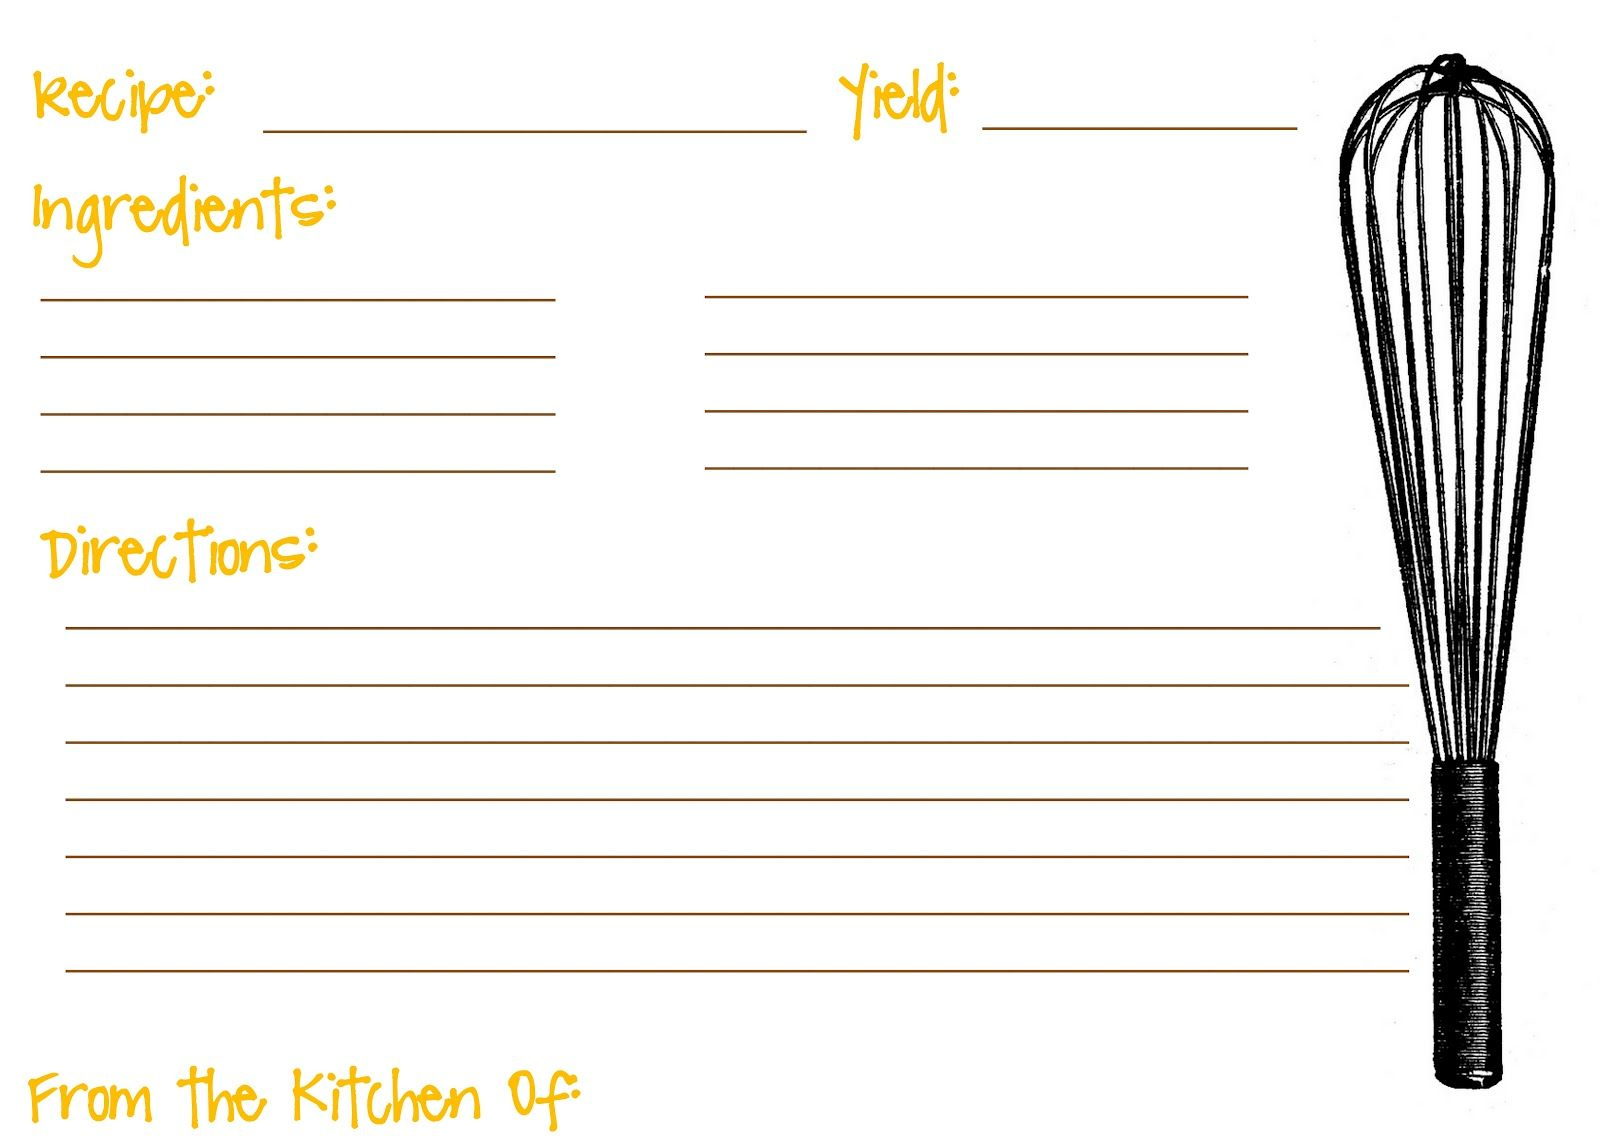 scooter cakes free printable recipe cards printable